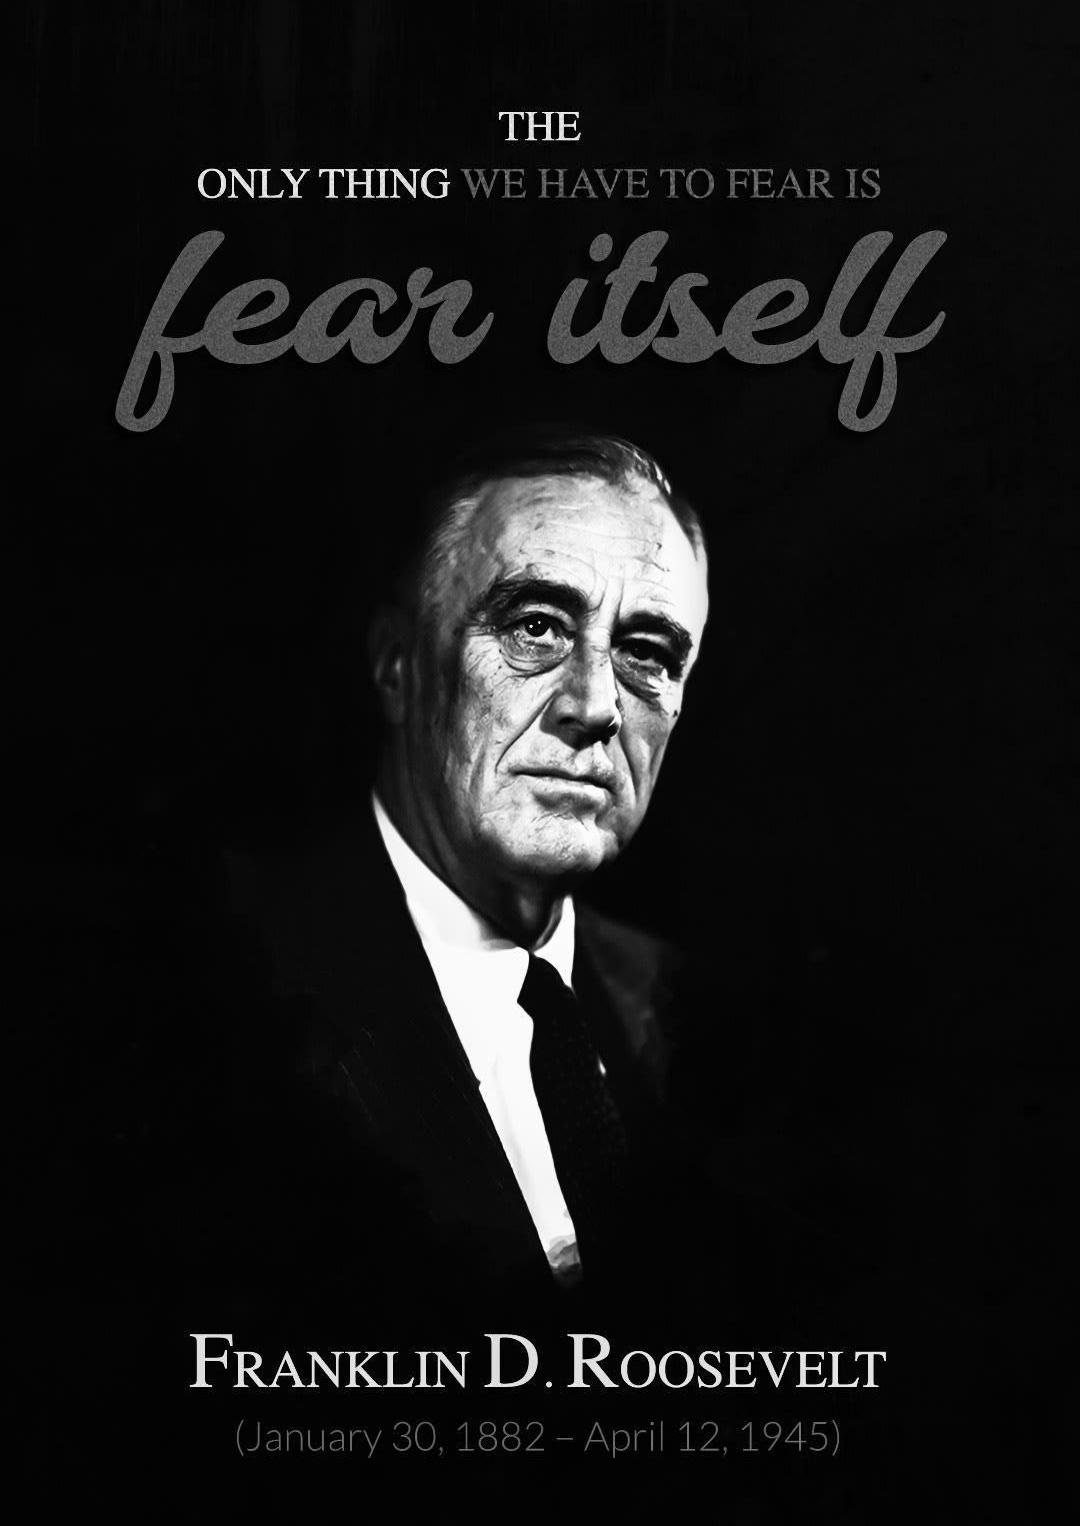 [Image] Franklin D. Roosevelt on fear.